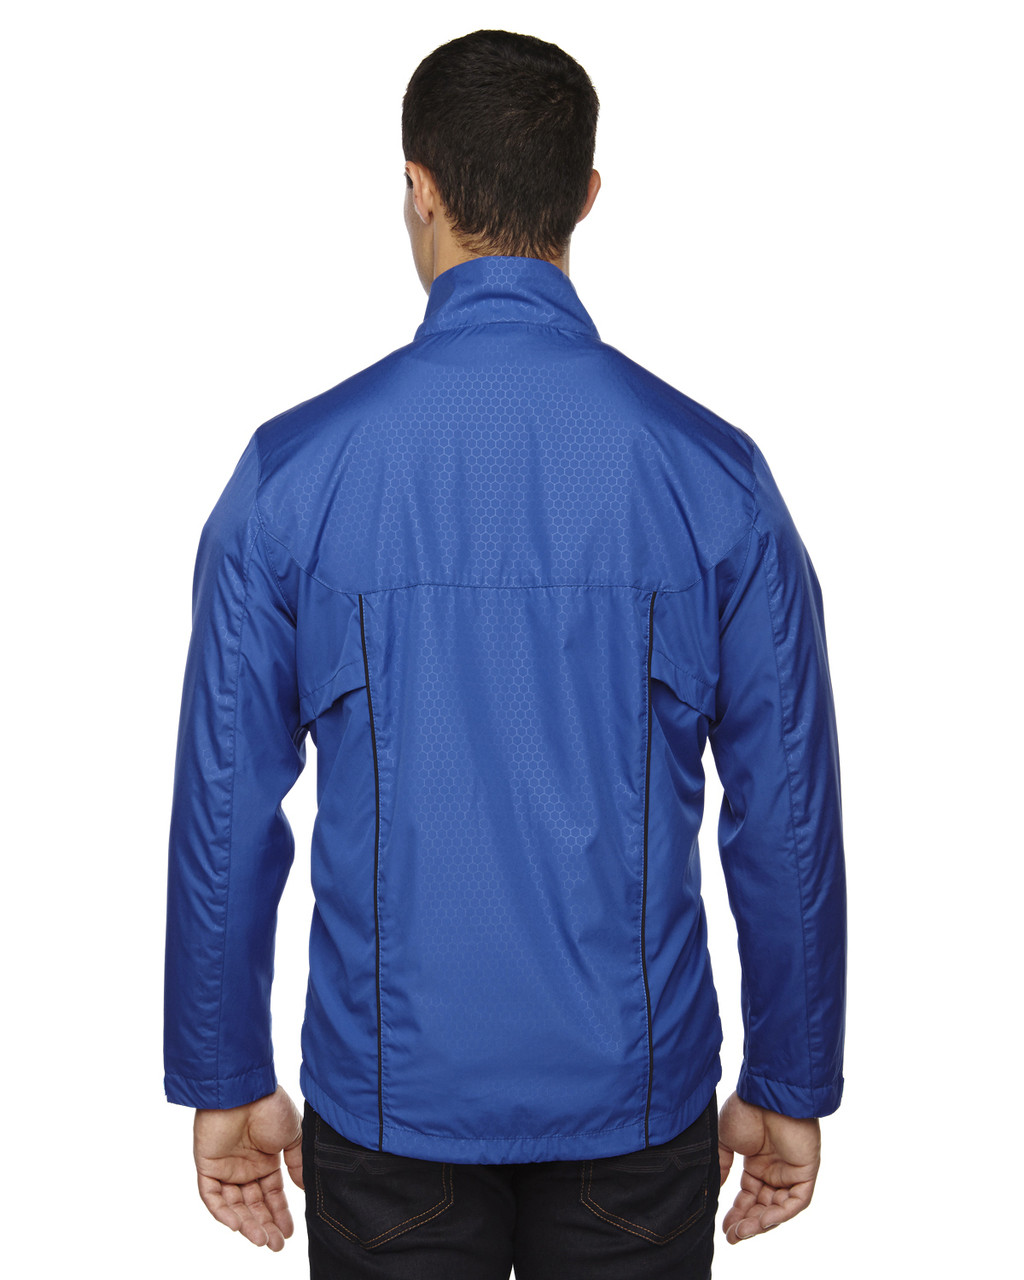 Nautical Blue-back 88188 North End Lightweight Recycled Polyester Jacket with Embossed Print | Blankclothing.ca